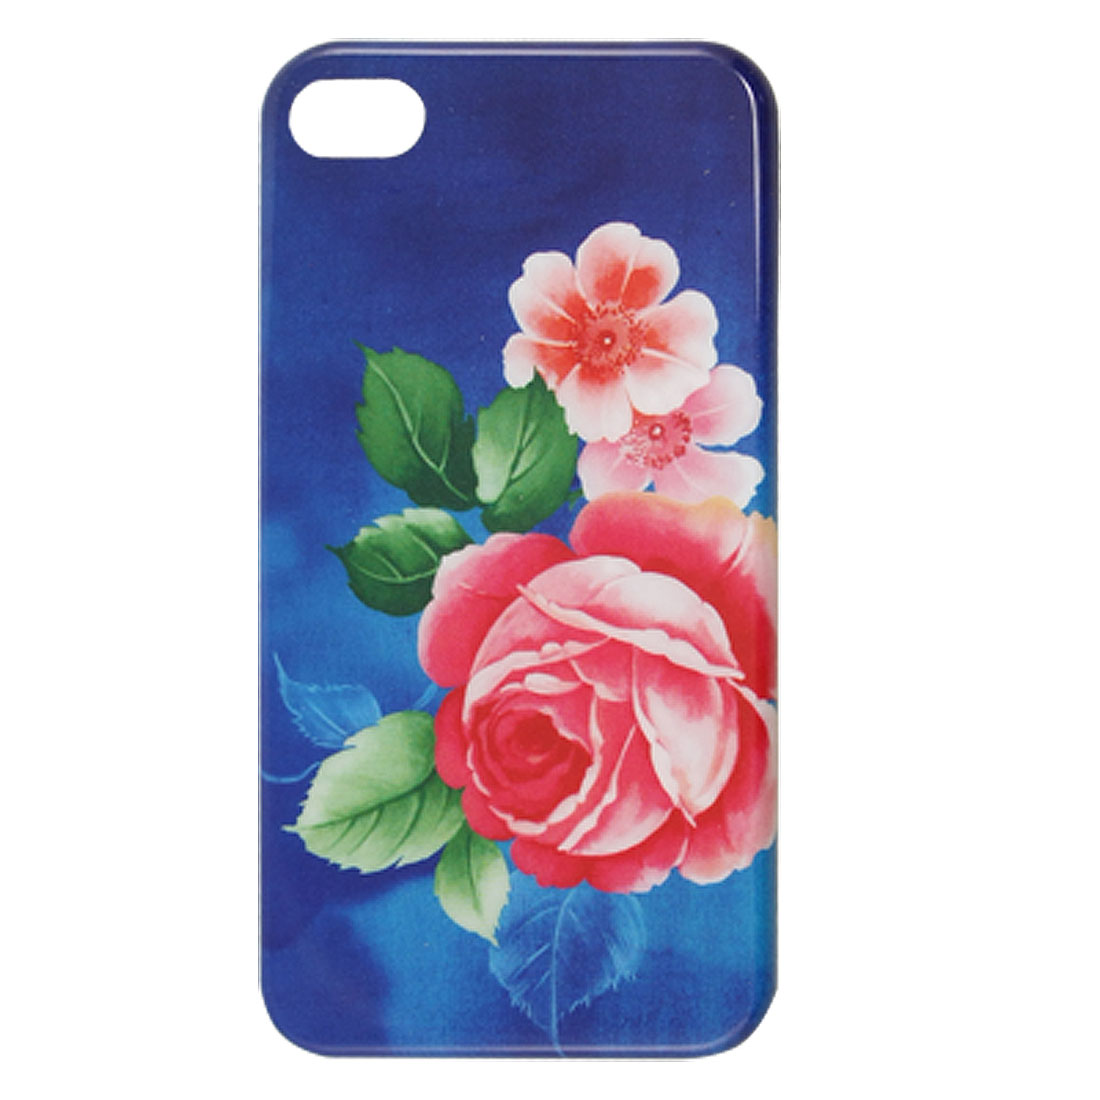 IMD Rose Print Blue Hard Plastic Back Shell for iPhone 4 4G 4S